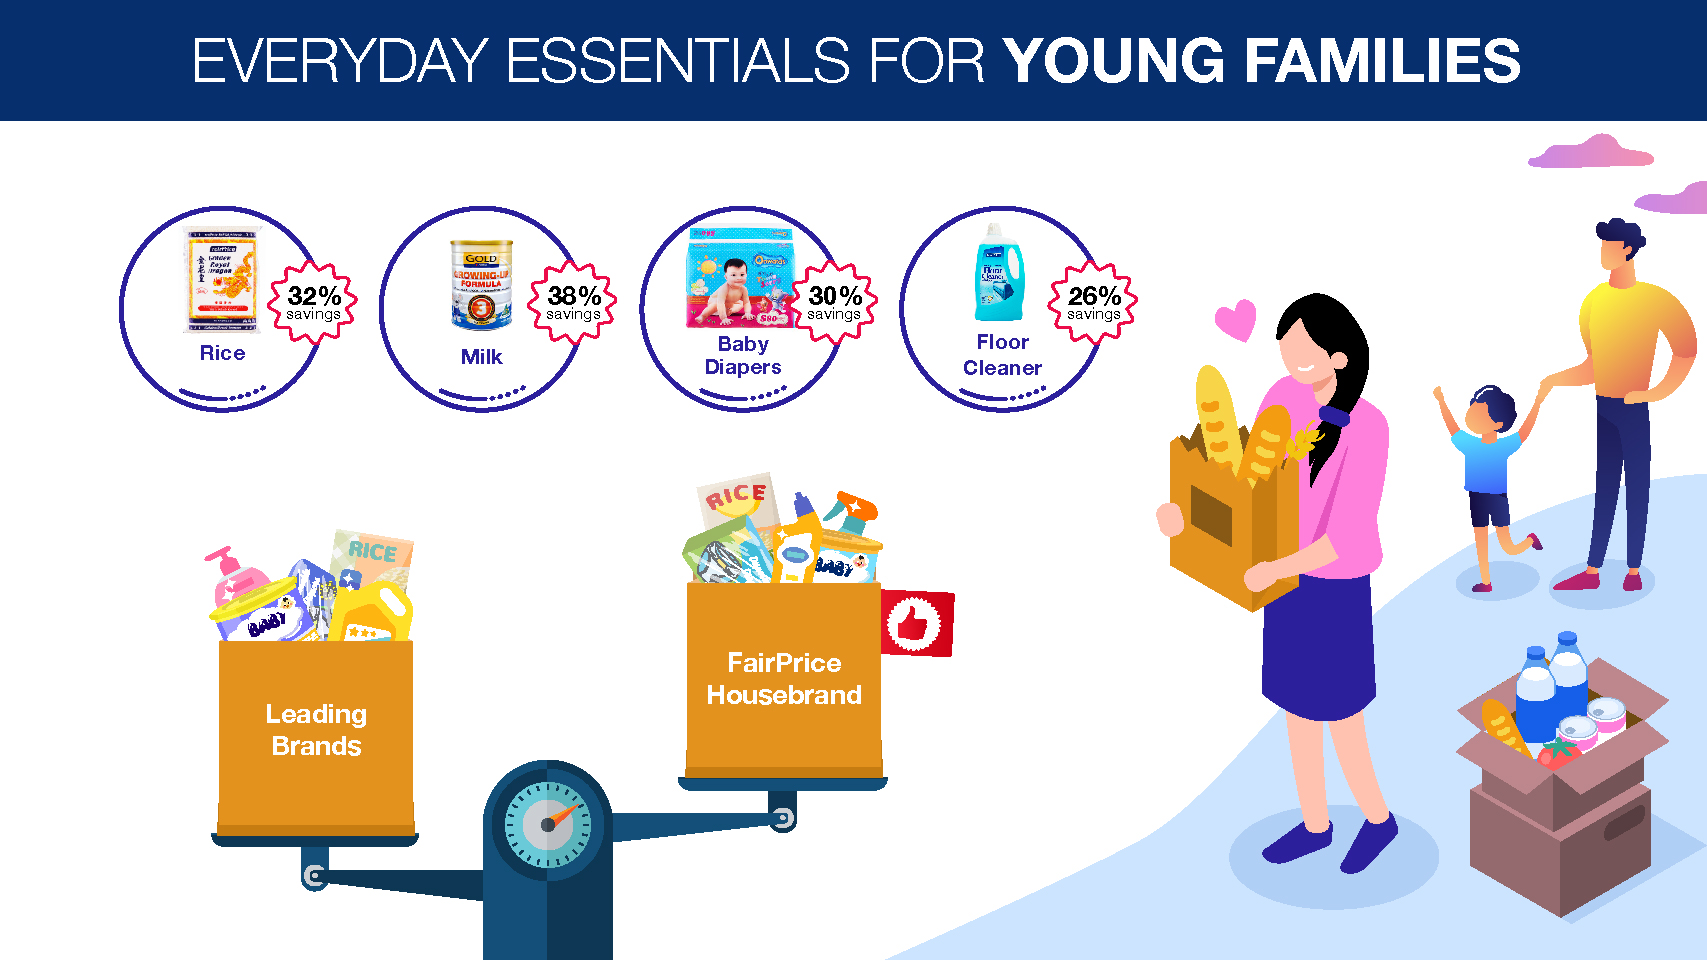 The 100 items in the list are some of the most common items purchased by households. For young families, opting for housebrand items such as infant milk powder, diapers and toilet rolls can help enjoy savings of up to 38 per cent.